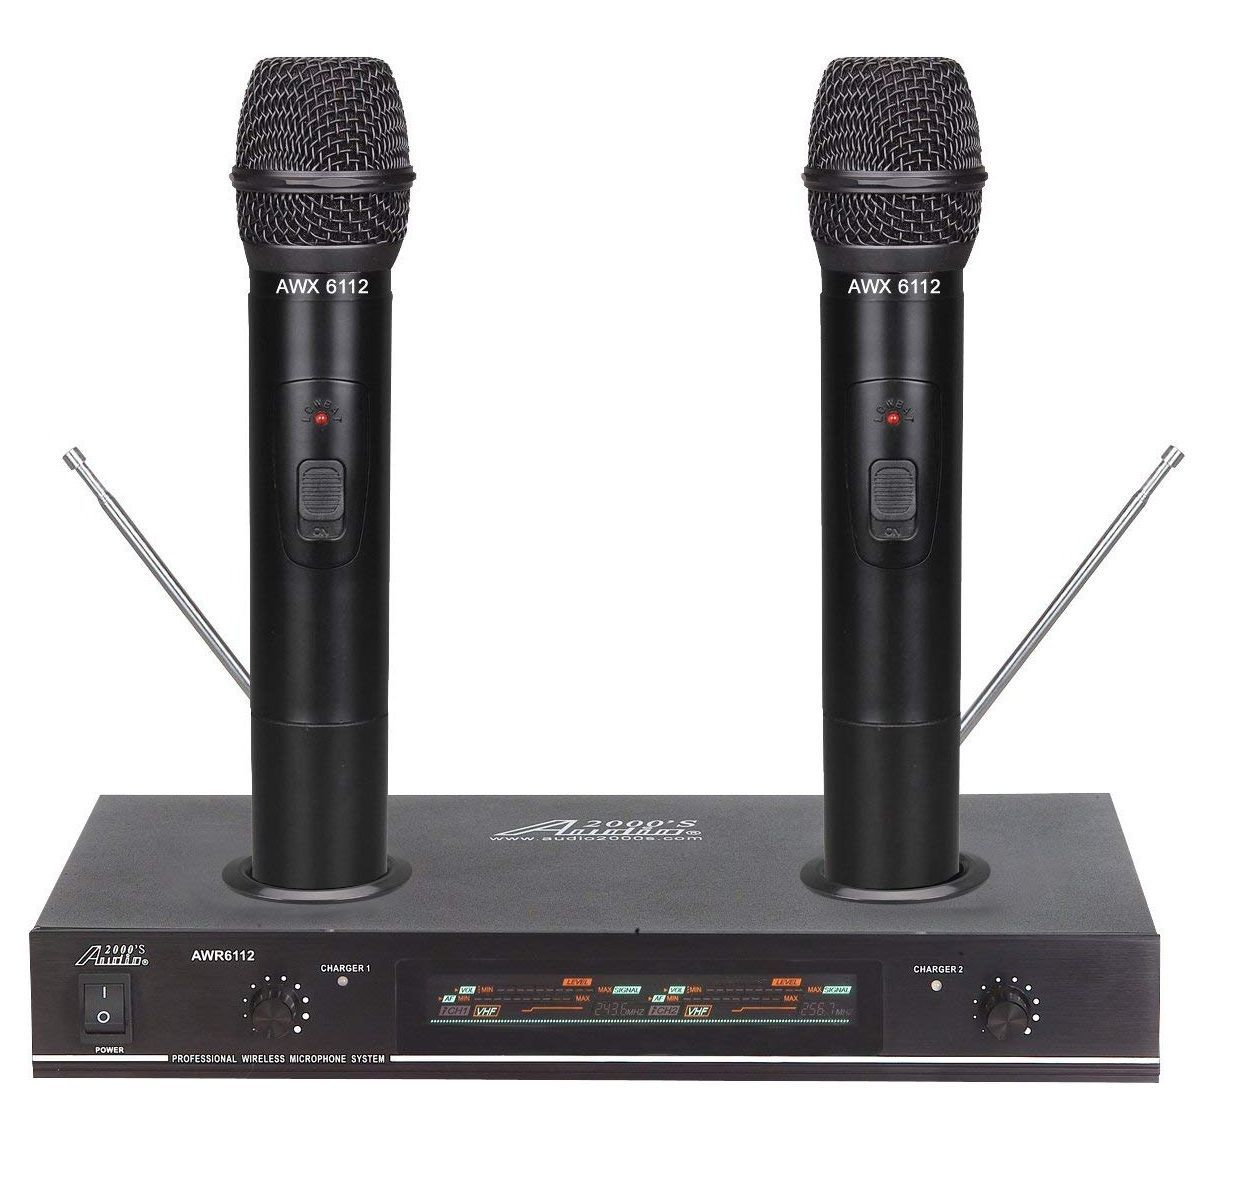 audio 2000 awm6112 rechargeable vhf wireless microphone system. Black Bedroom Furniture Sets. Home Design Ideas